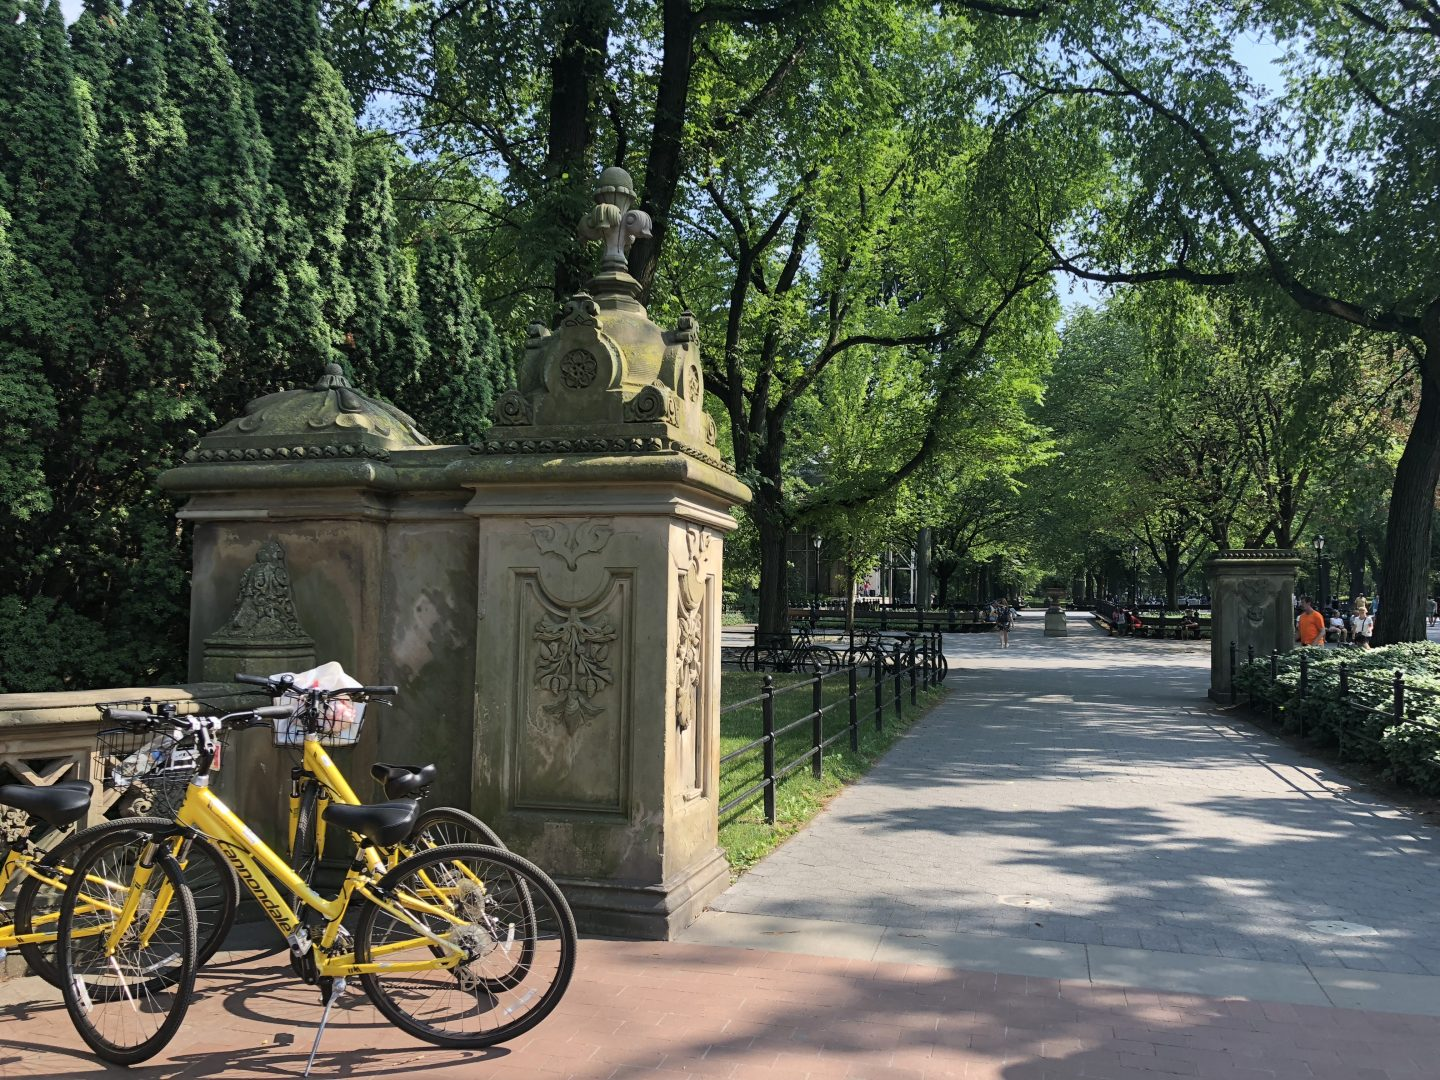 Bike tour in Central Park New York